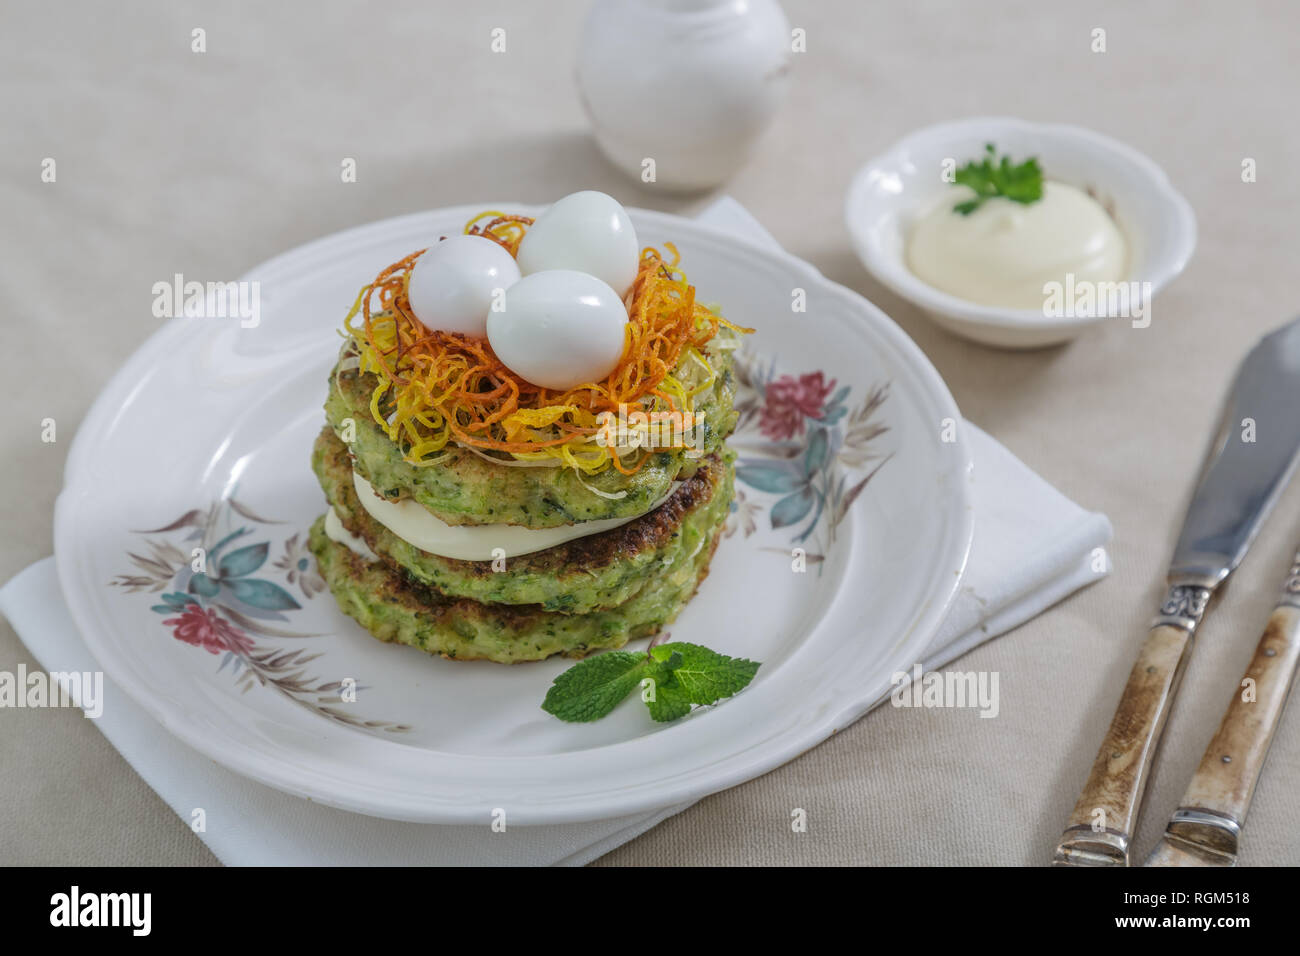 Healthy breakfast with zucchini fritters and eggs - Stock Image